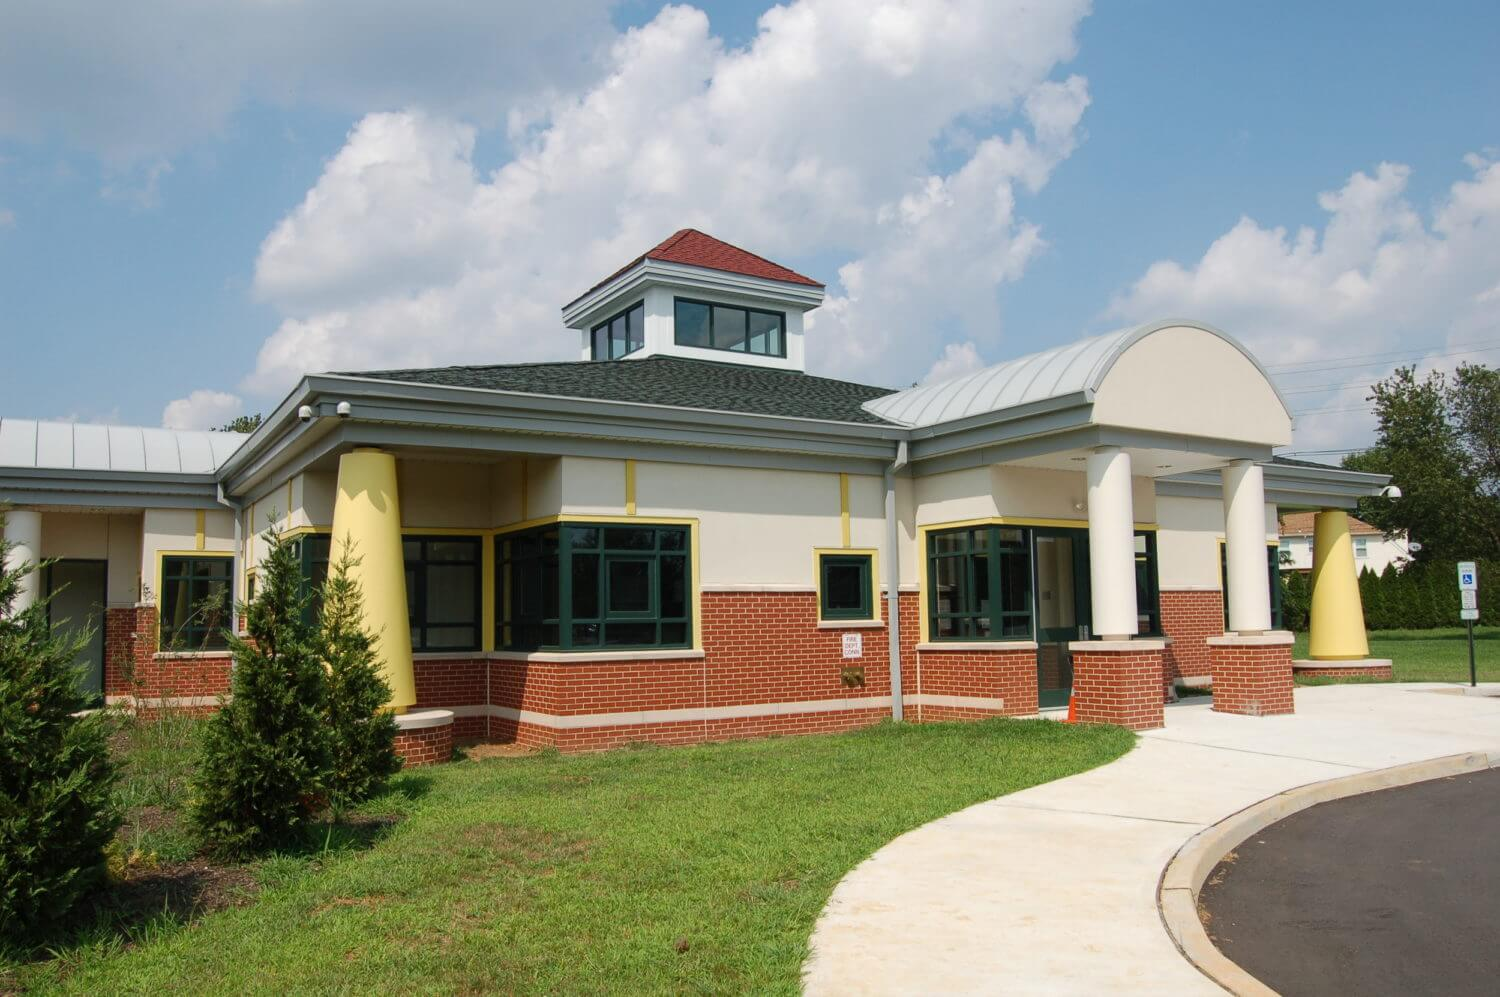 Monmouth County Child Advocacy Center – Freehold, NJ